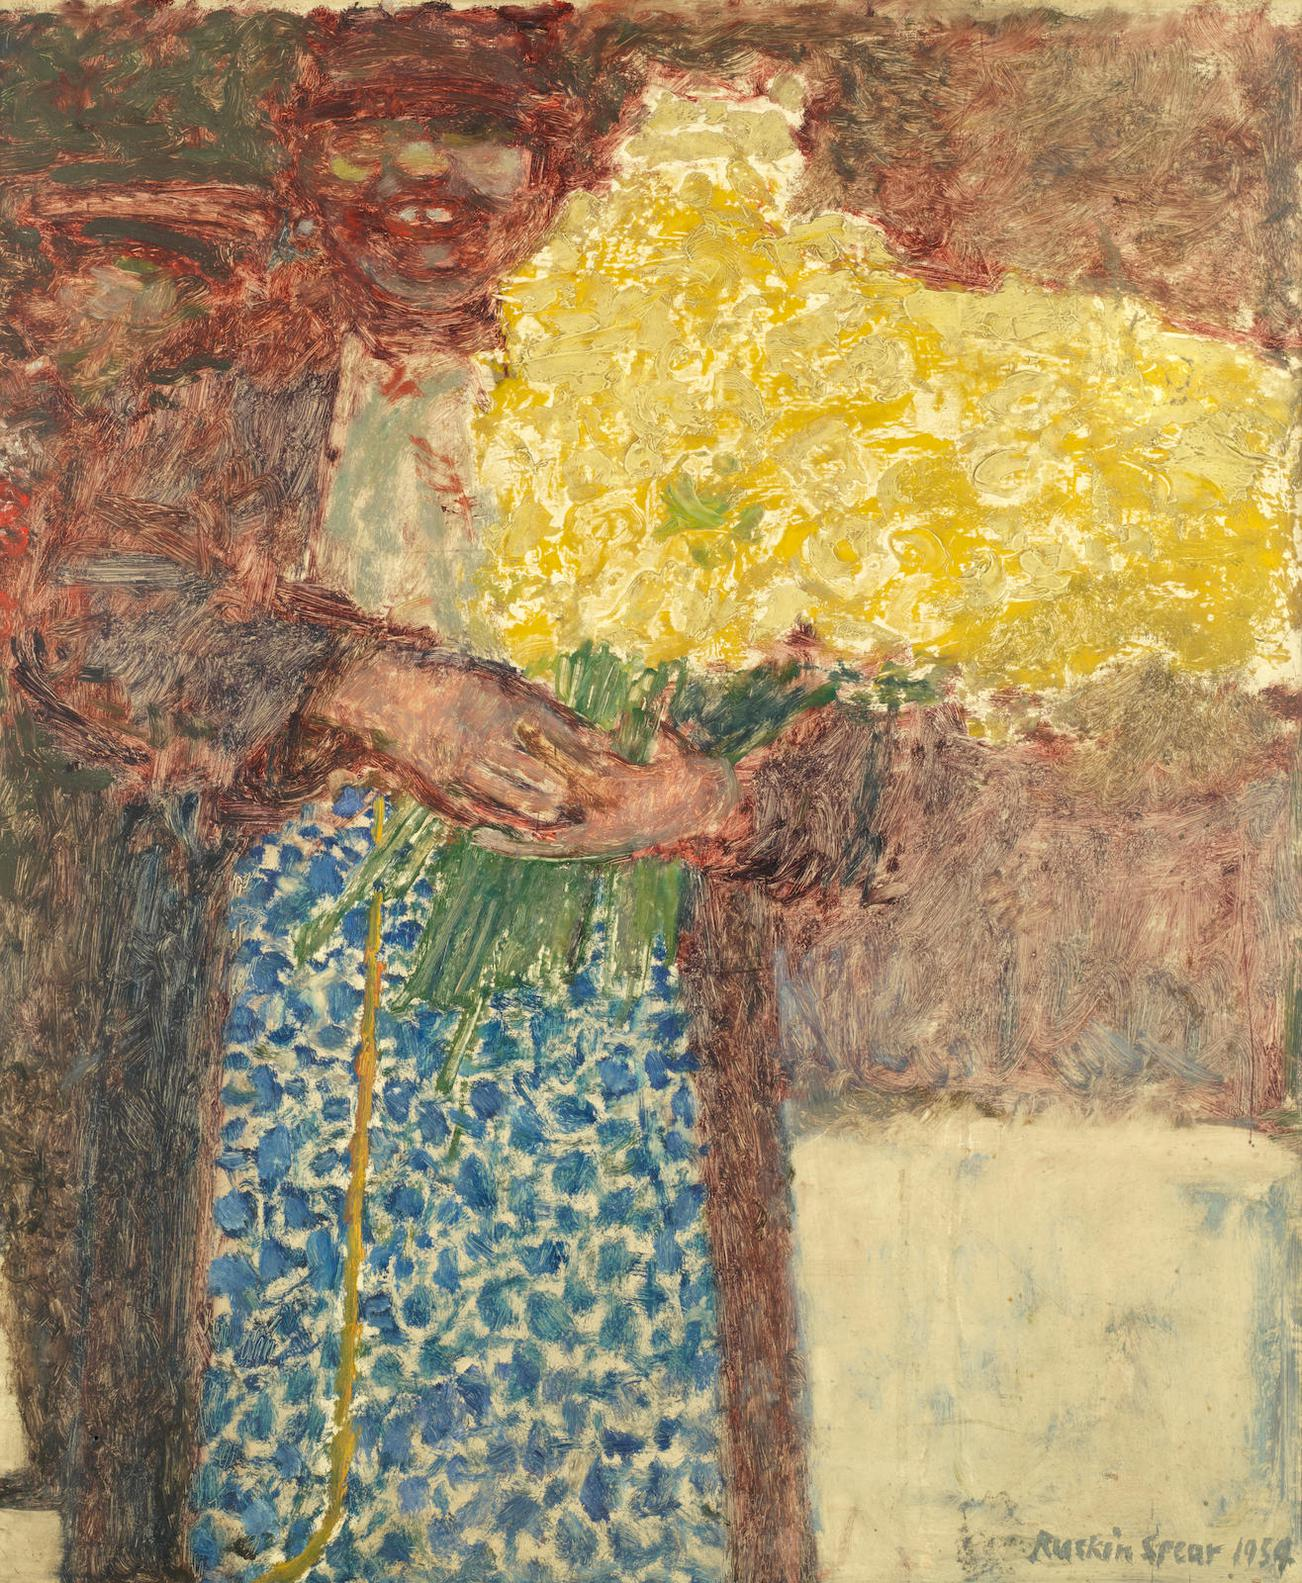 Ruskin Spear-Lady With Bouquet Of Daffodils-1954